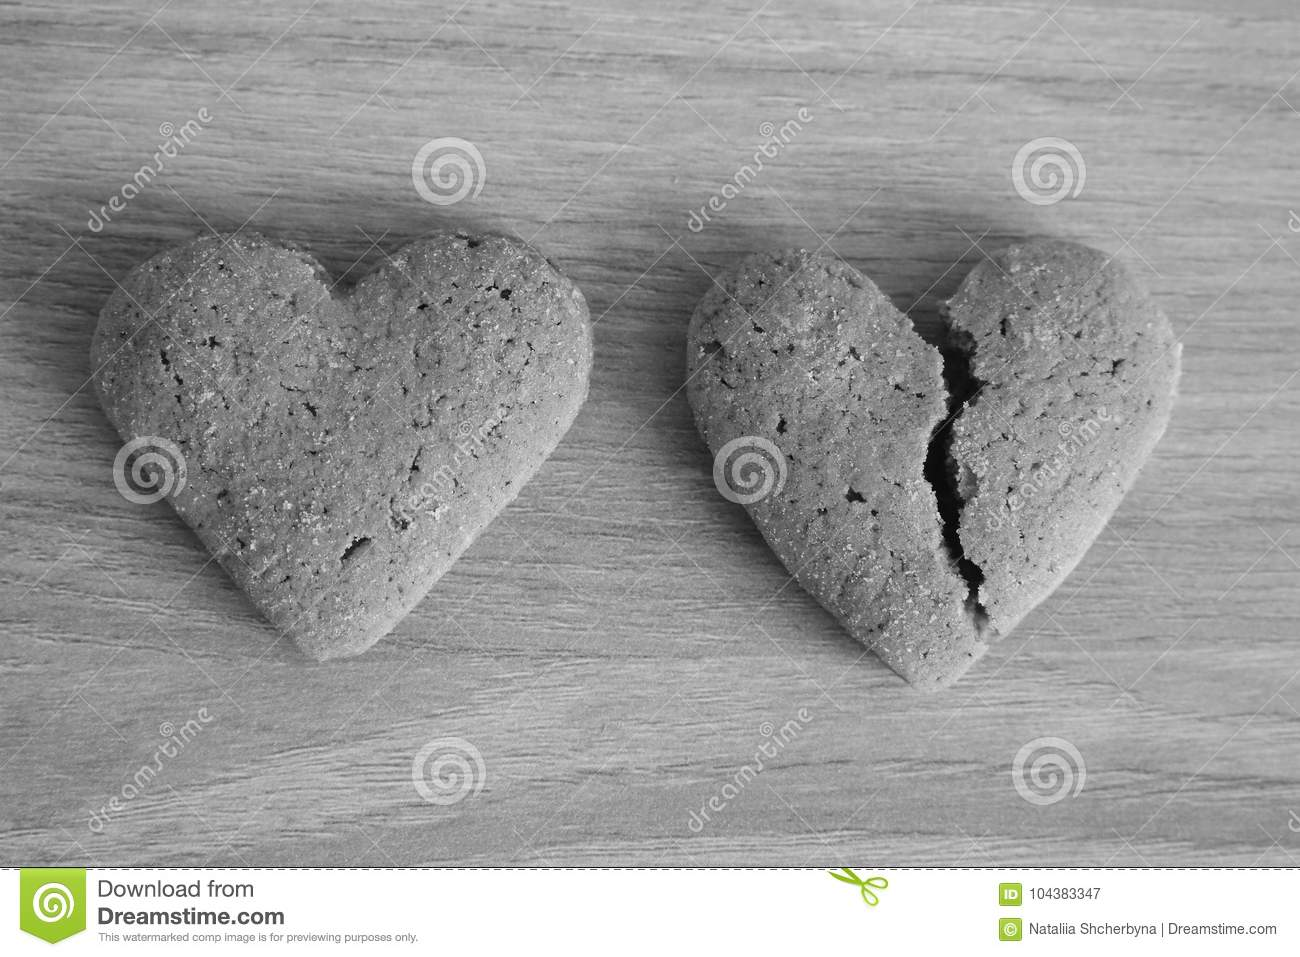 Broken and unbroken shortbread hearts on wooden background black and white as unhappy love background.